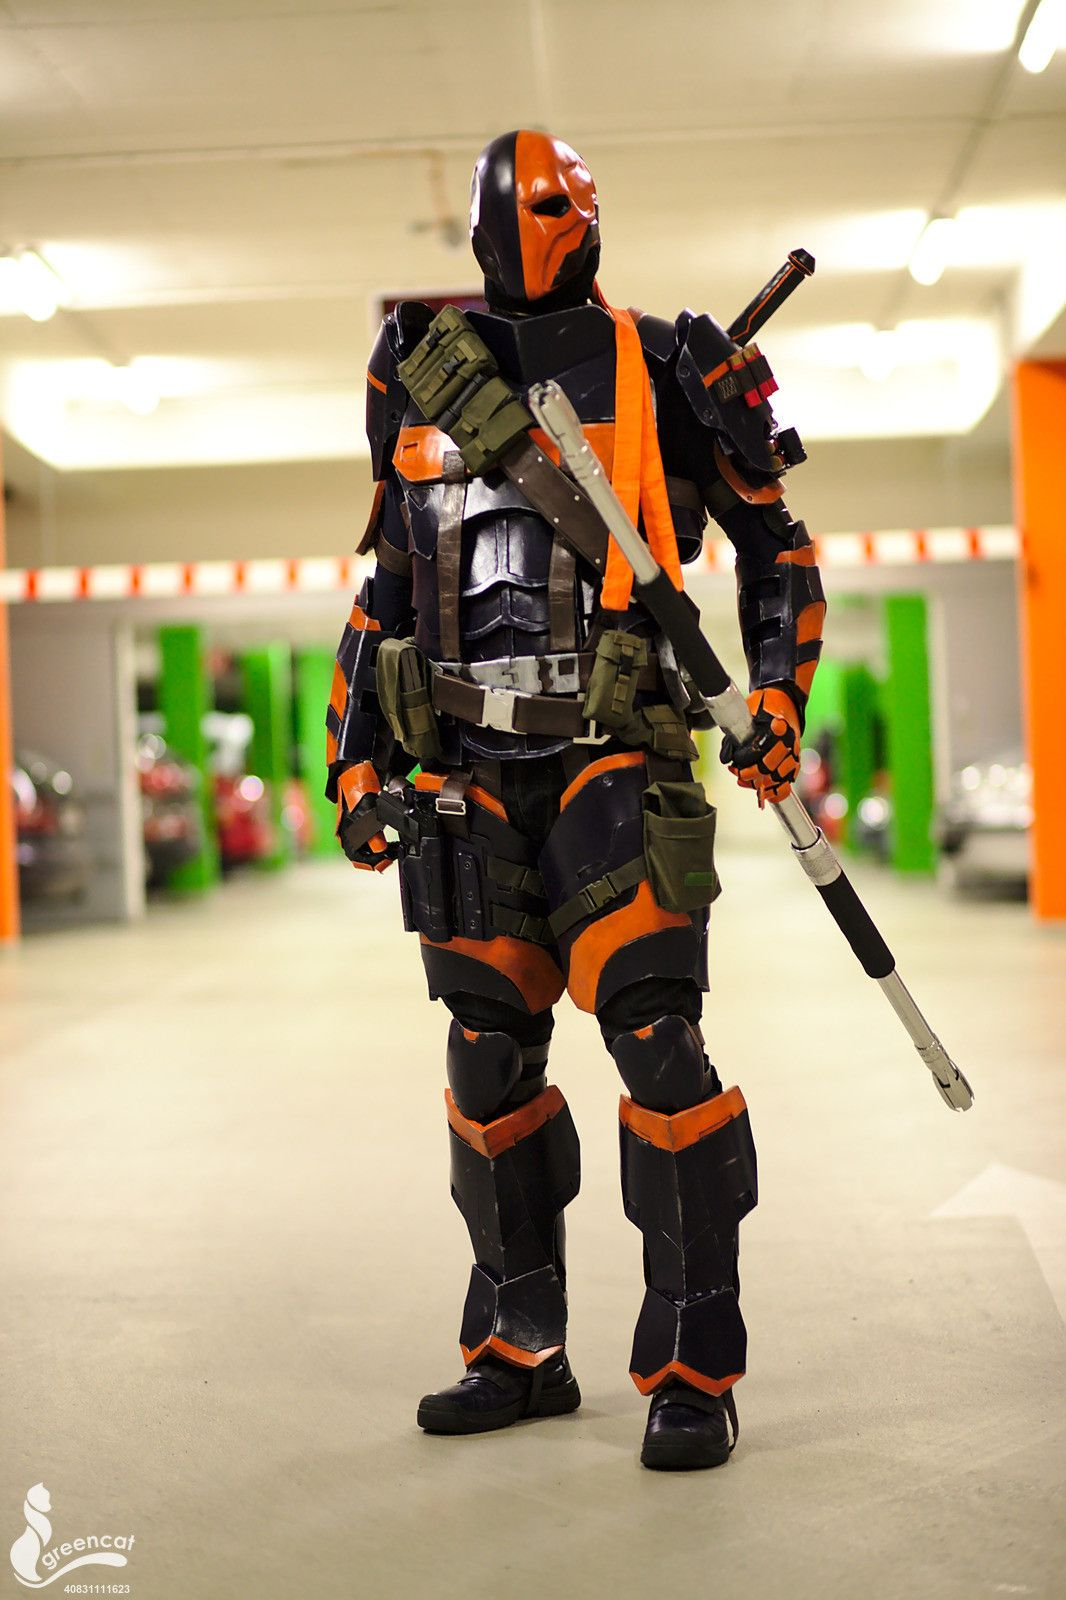 deathstroke armor template - cosplay gamers deathstroke cosplay by eye of sauron